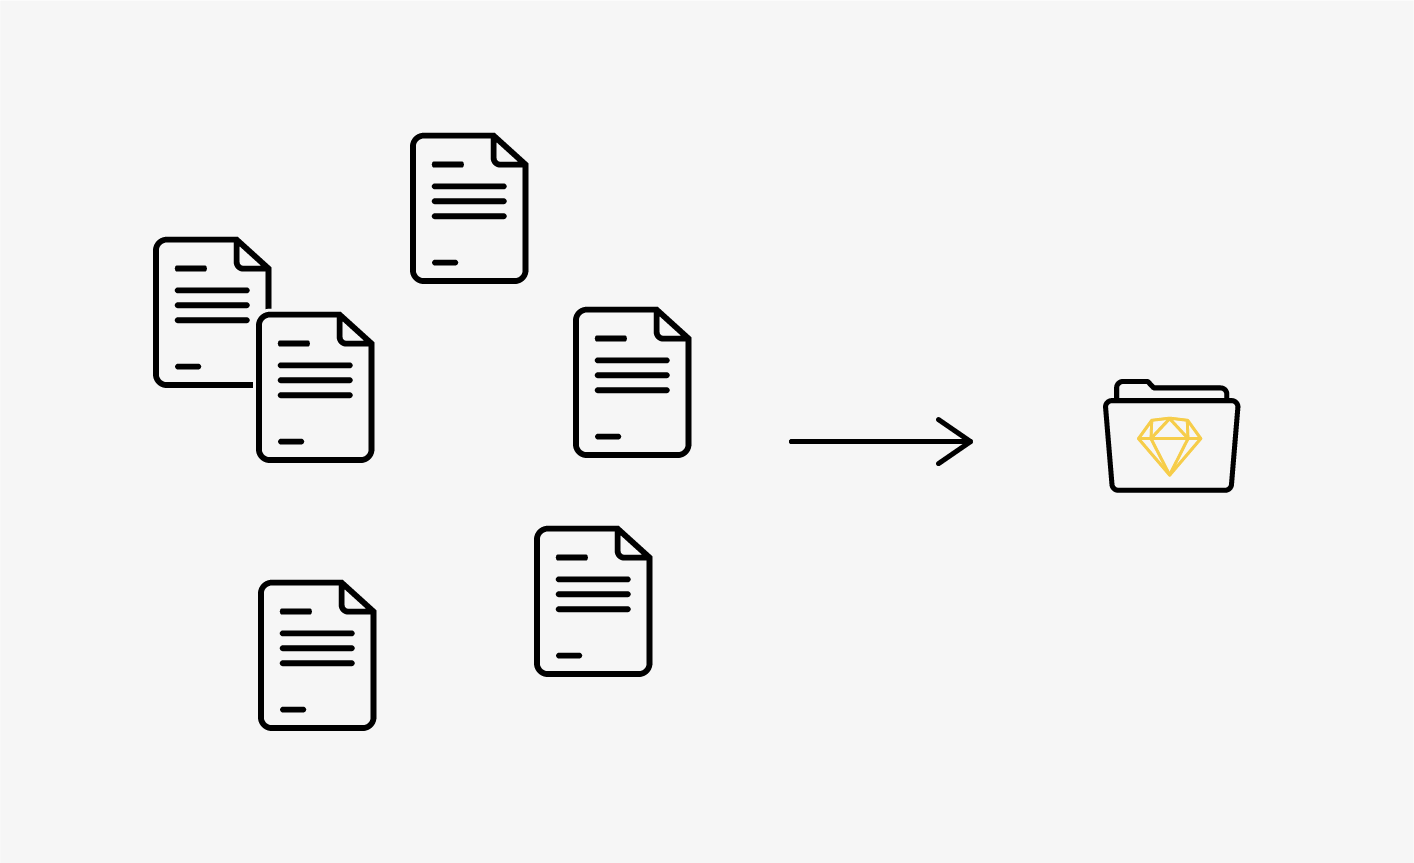 A diagram showing document icons on one side with an arrow pointing to a folder with the Sketch logo on on the other.